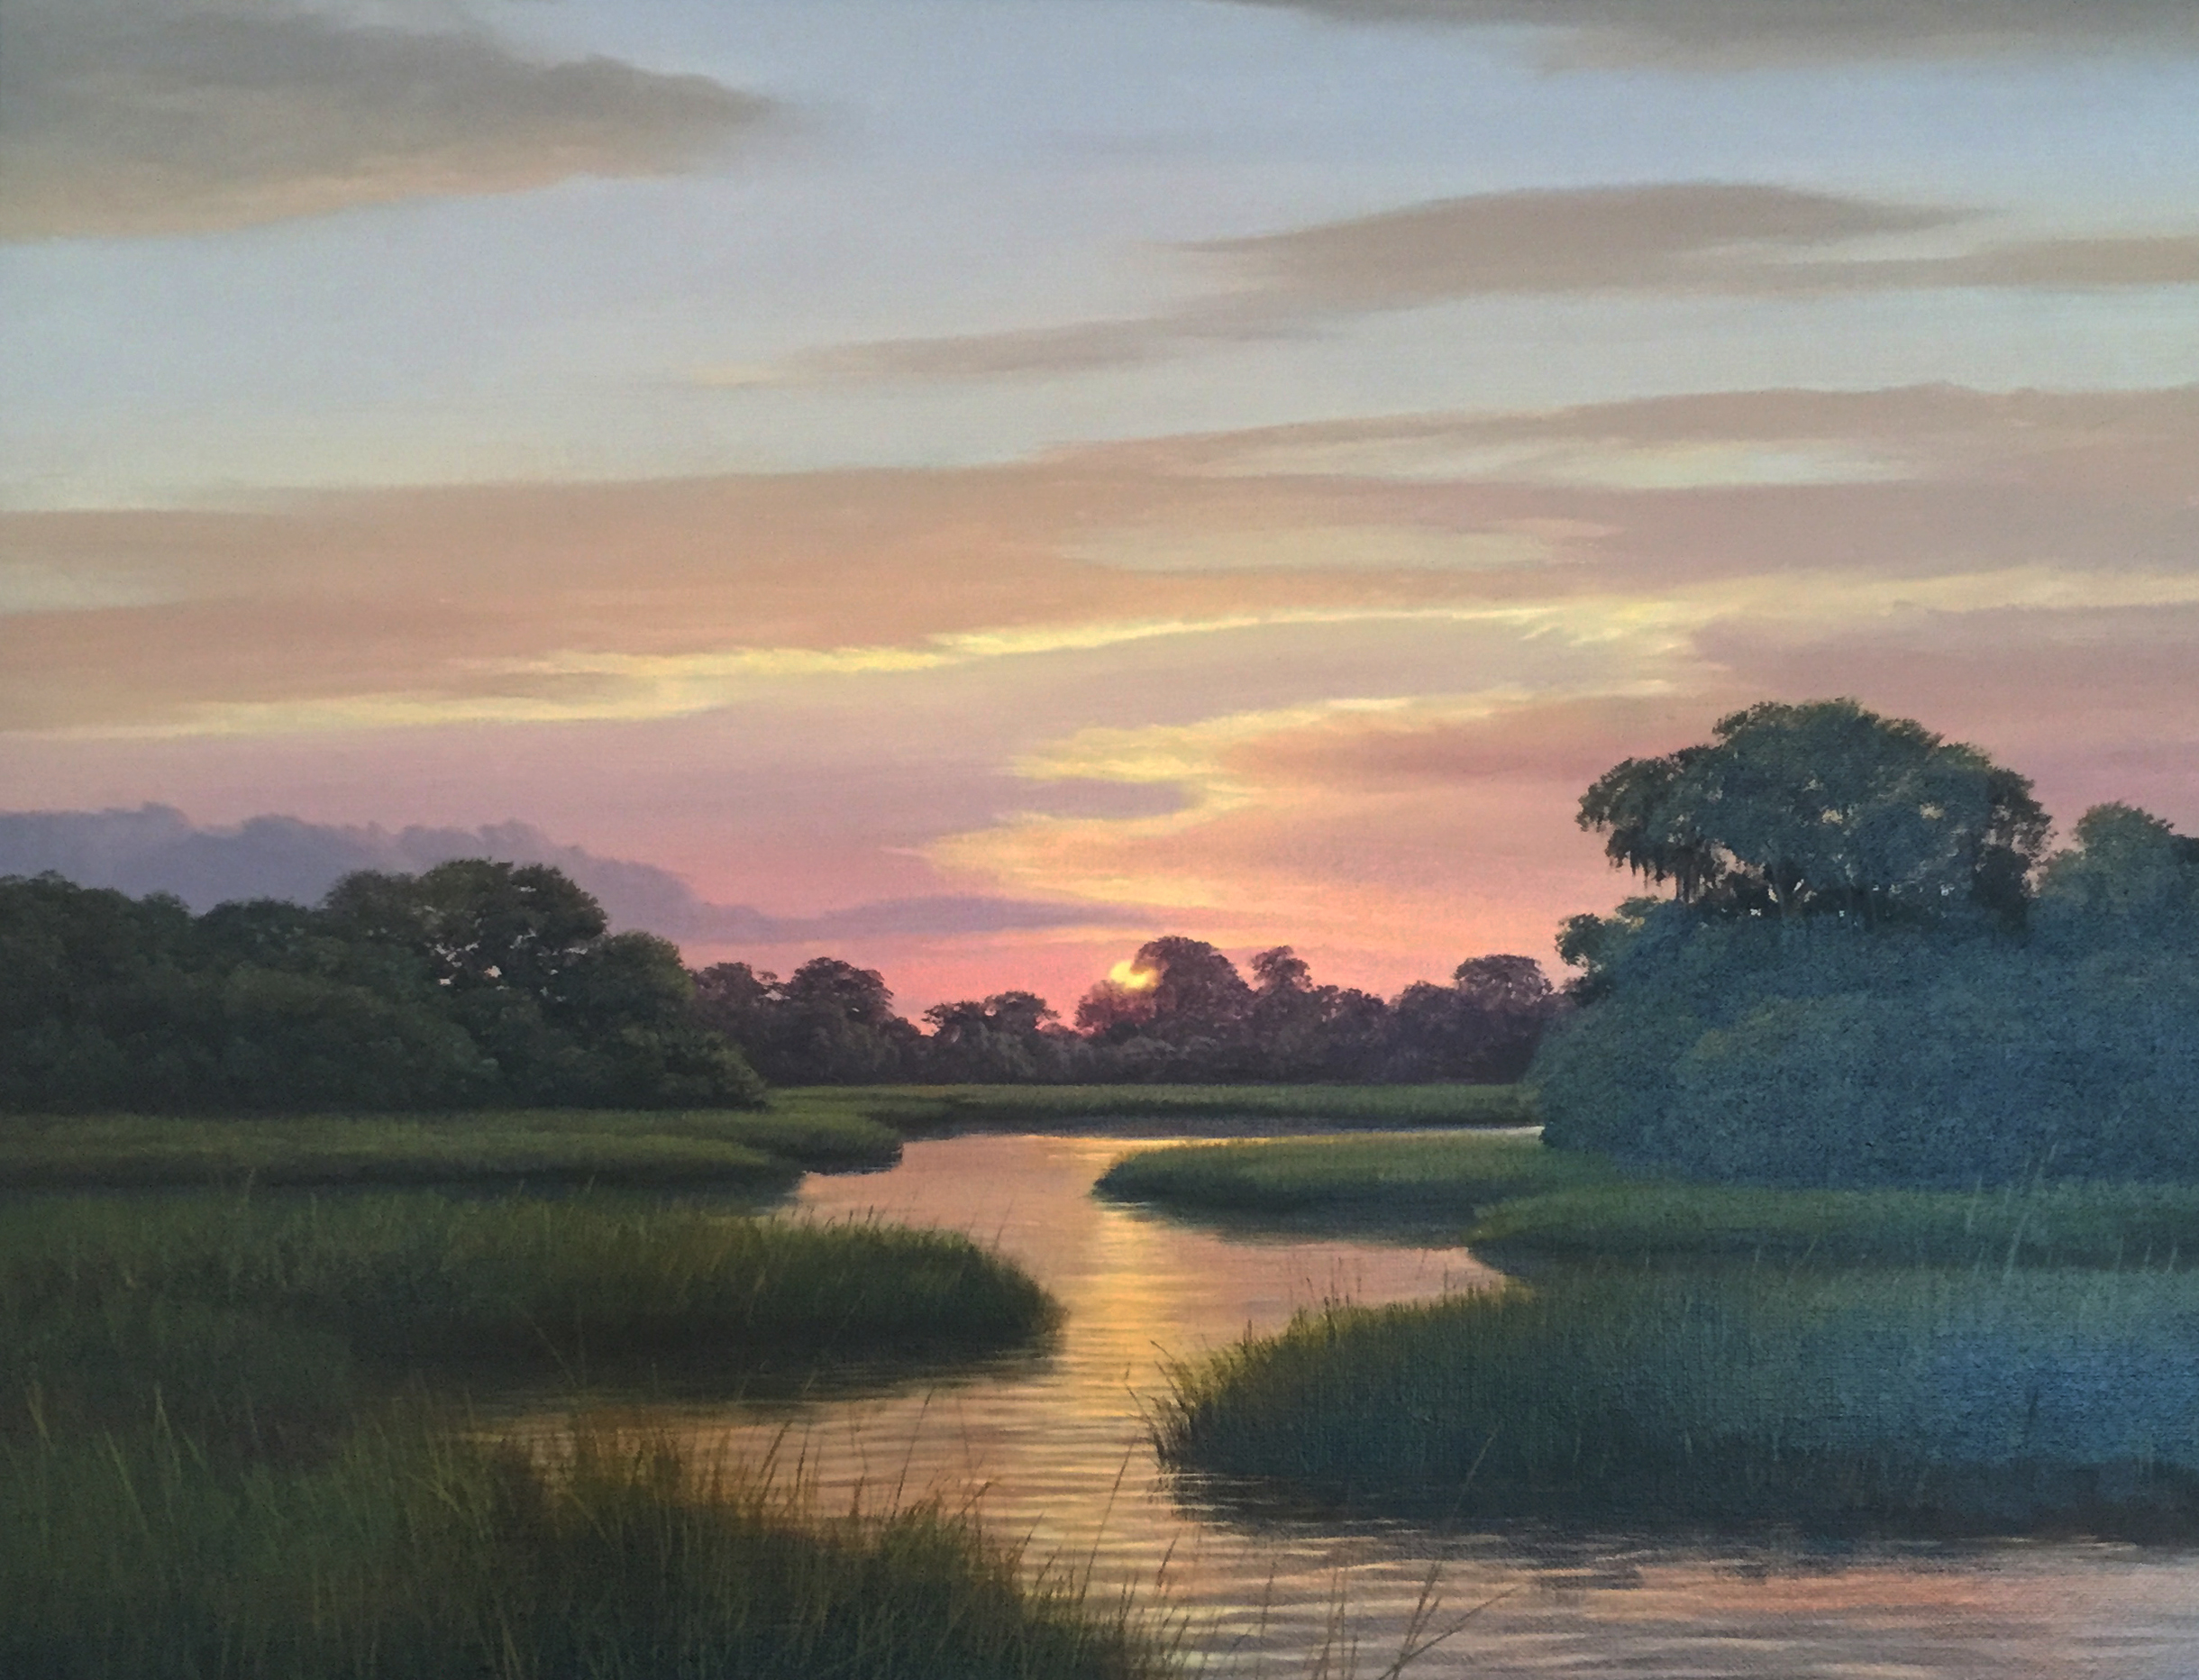 """Day's End"" Henry von Genk, lll, Oil on Canvas 2004"